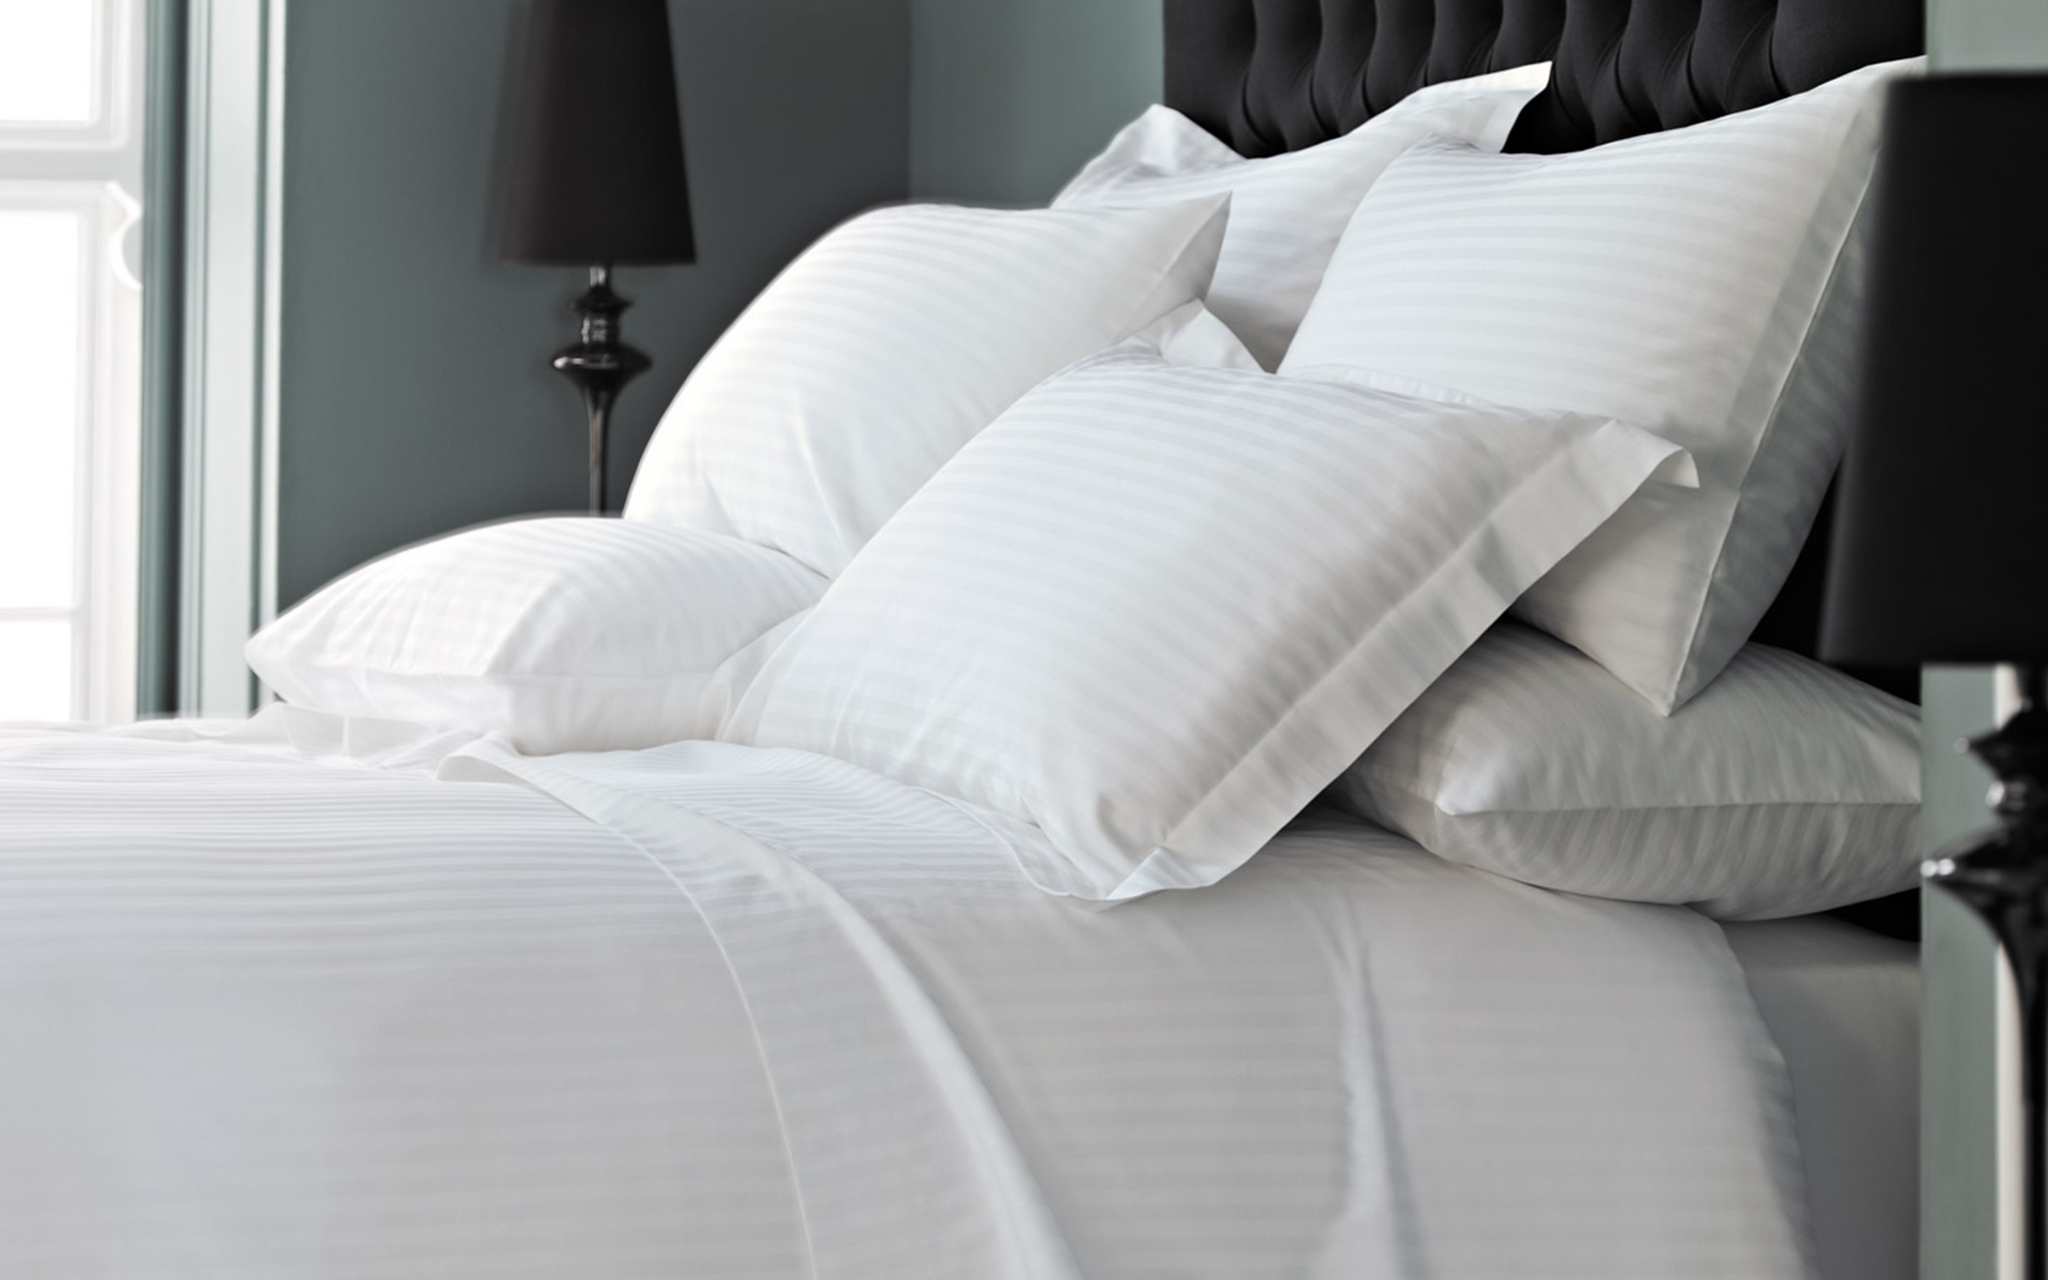 Hotel bedding trends promote wellness, cleanliness | Hotel